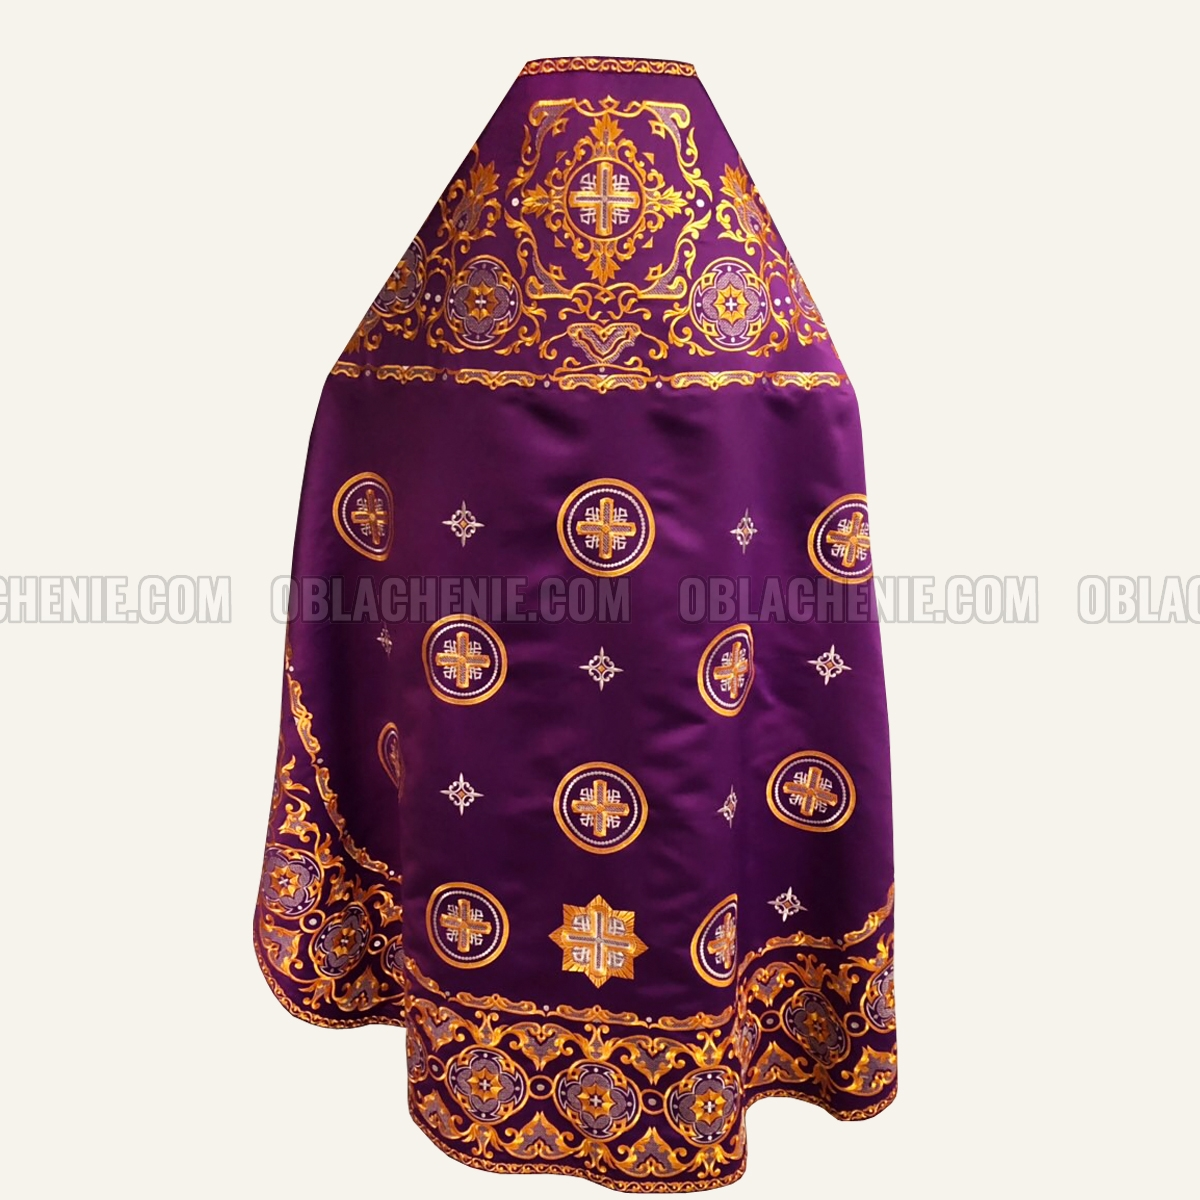 Embroidered priest's vestments 10217